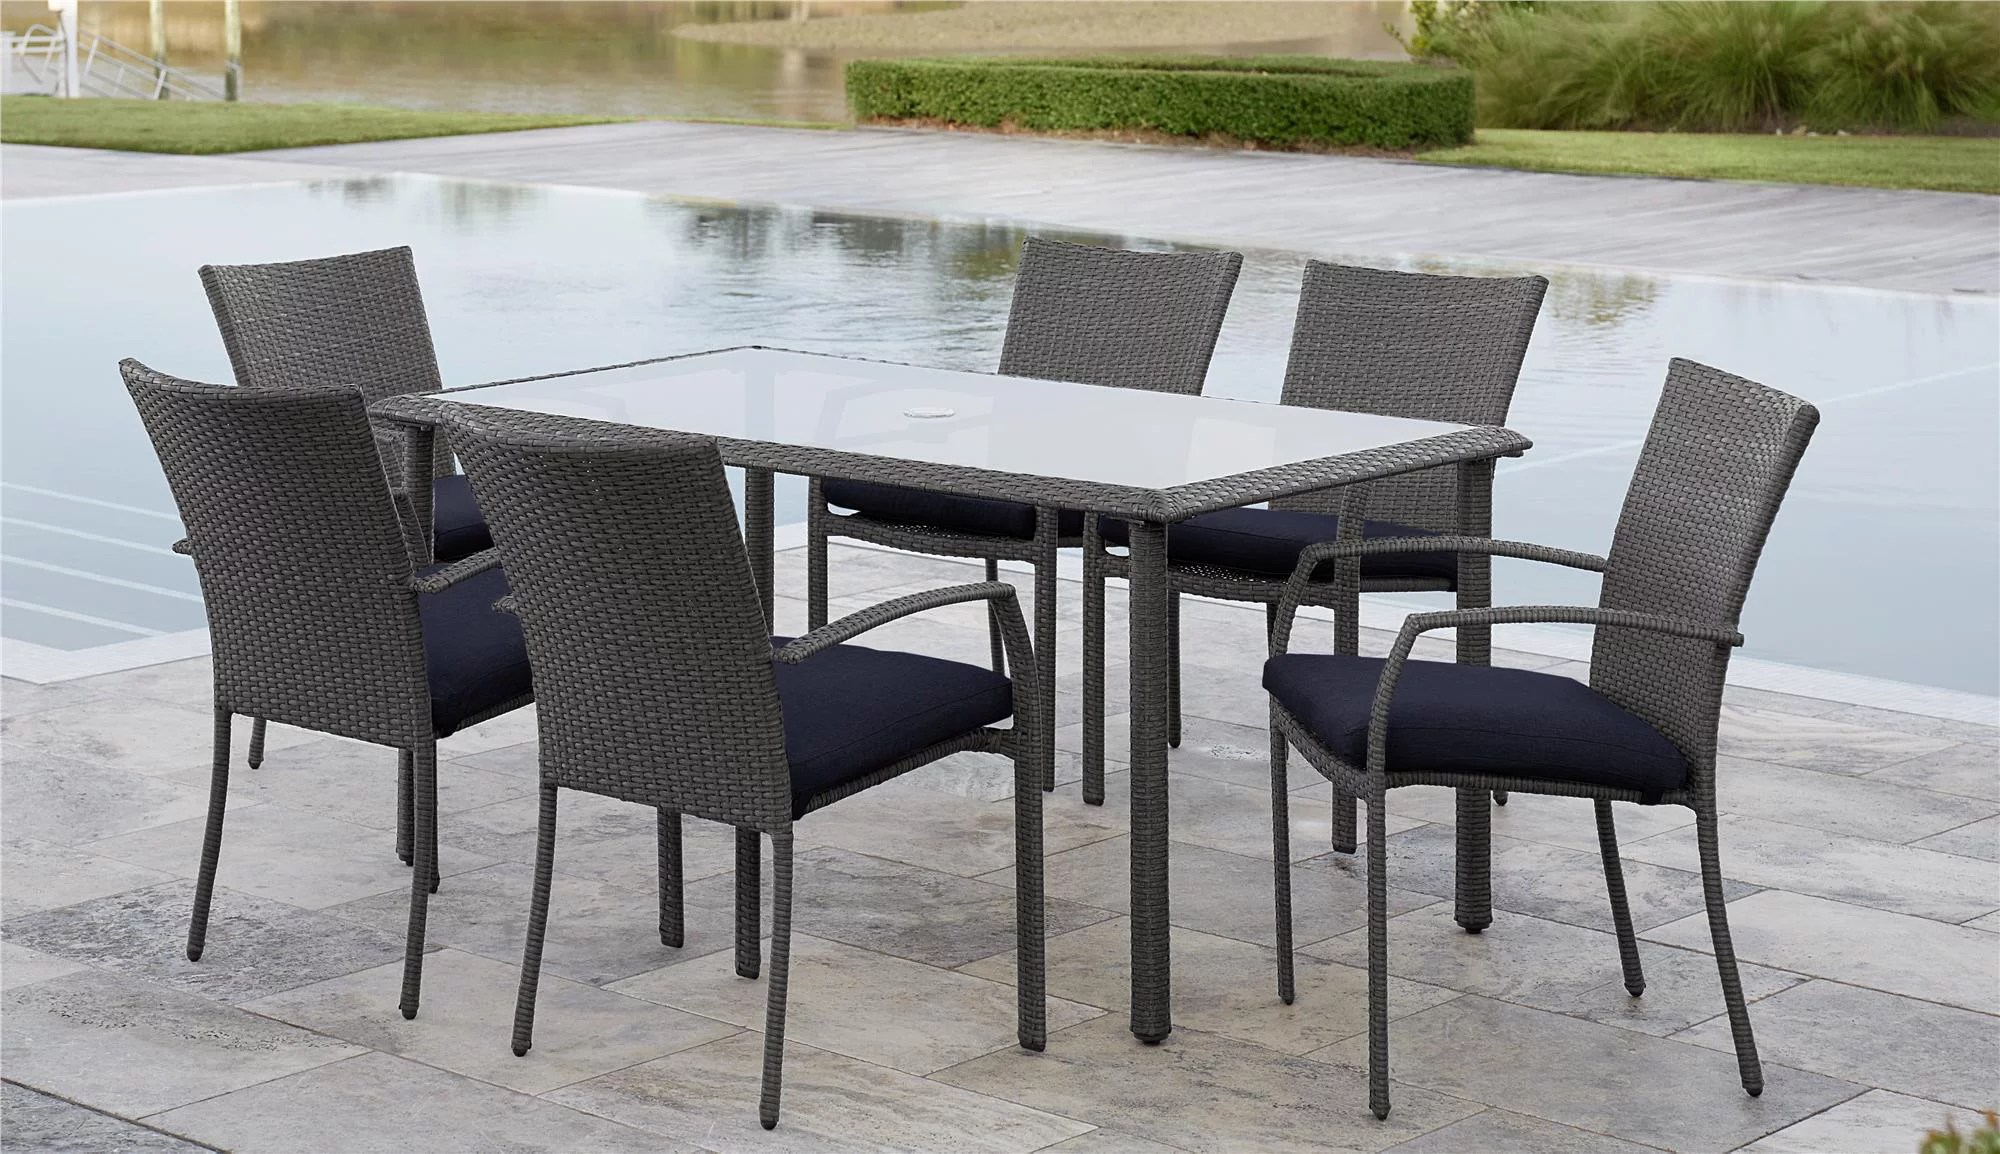 Cosco Lakewood Ranch 7 Piece Steel Woven Wicker Patio